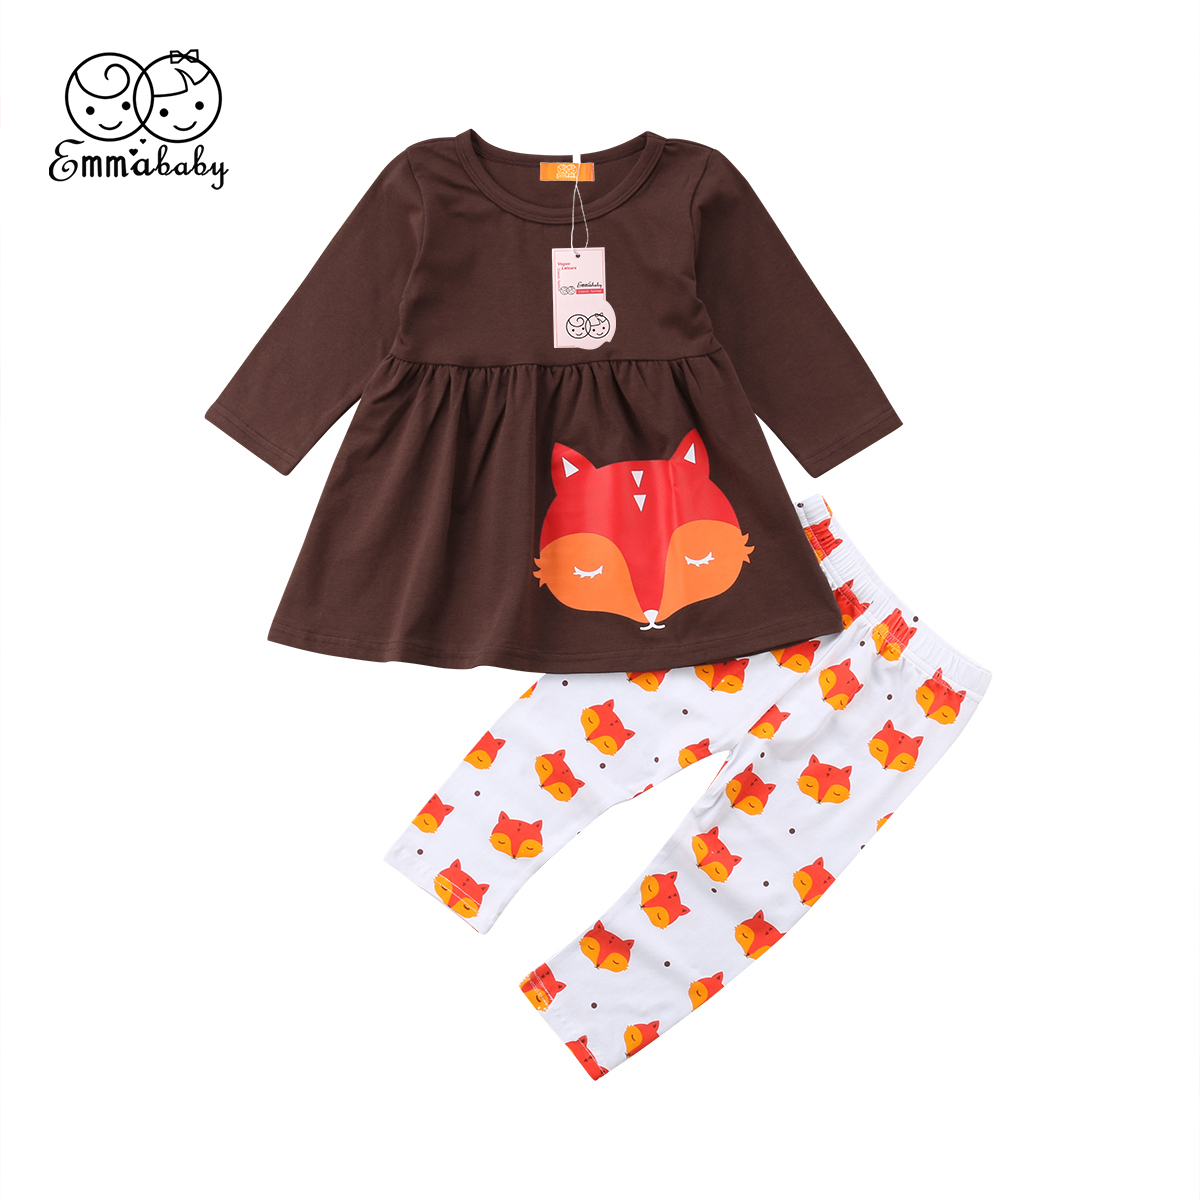 2PCS Fox Outfits Sets Toddler Kids Baby Girl Outfits Clothes Long Sleeeve T-shirt Top Dress+Leggings Pants Casual Clothes Sets